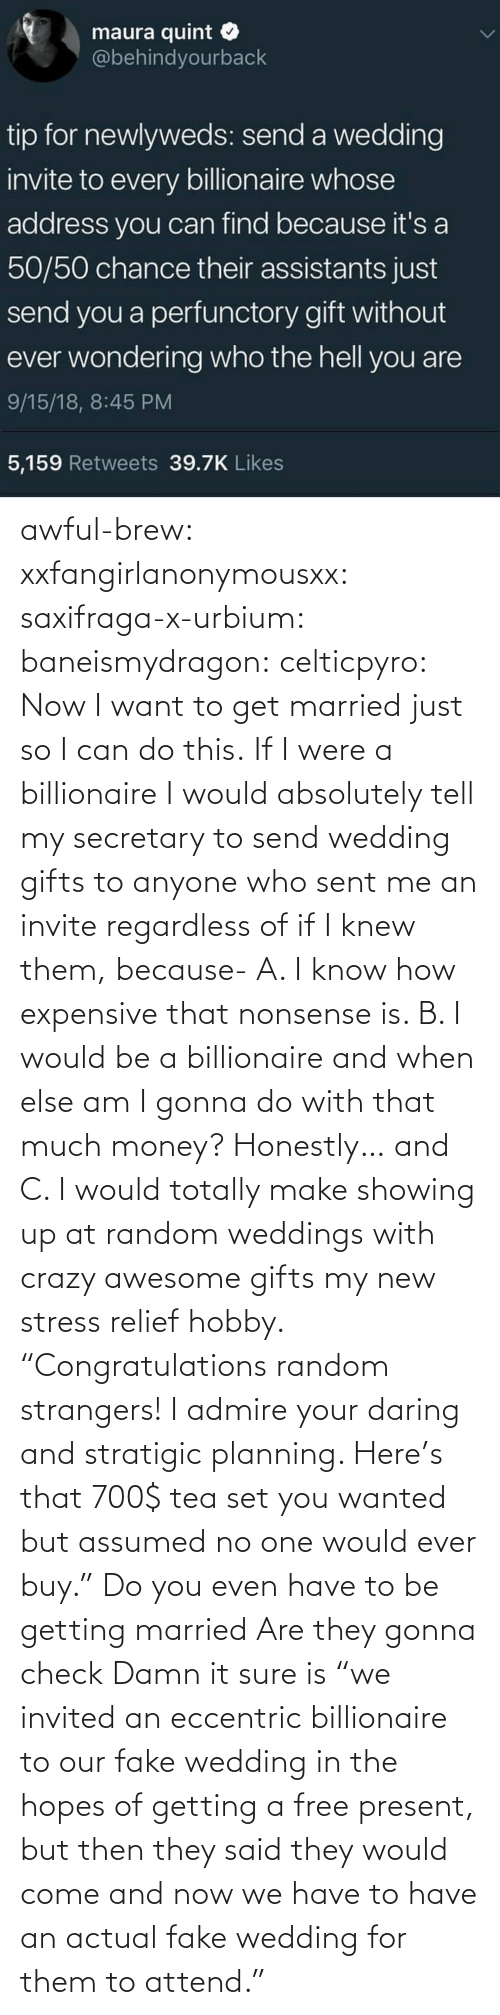 "tea: awful-brew:  xxfangirlanonymousxx:  saxifraga-x-urbium:  baneismydragon:  celticpyro: Now I want to get married just so I can do this.  If I were a billionaire I would absolutely tell my secretary to send wedding gifts to anyone who sent me an invite regardless of if I knew them, because- A. I know how expensive that nonsense is. B. I would be a billionaire and when else am I gonna do with that much money? Honestly… and C. I would totally make showing up at random weddings with crazy awesome gifts my new stress relief hobby. ""Congratulations random strangers! I admire your daring and stratigic planning. Here's that 700$ tea set you wanted but assumed no one would ever buy.""   Do you even have to be getting married Are they gonna check   Damn it sure is  ""we invited an eccentric billionaire to our fake wedding in the hopes of getting a free present, but then they said they would come and now we have to have an actual fake wedding for them to attend."""